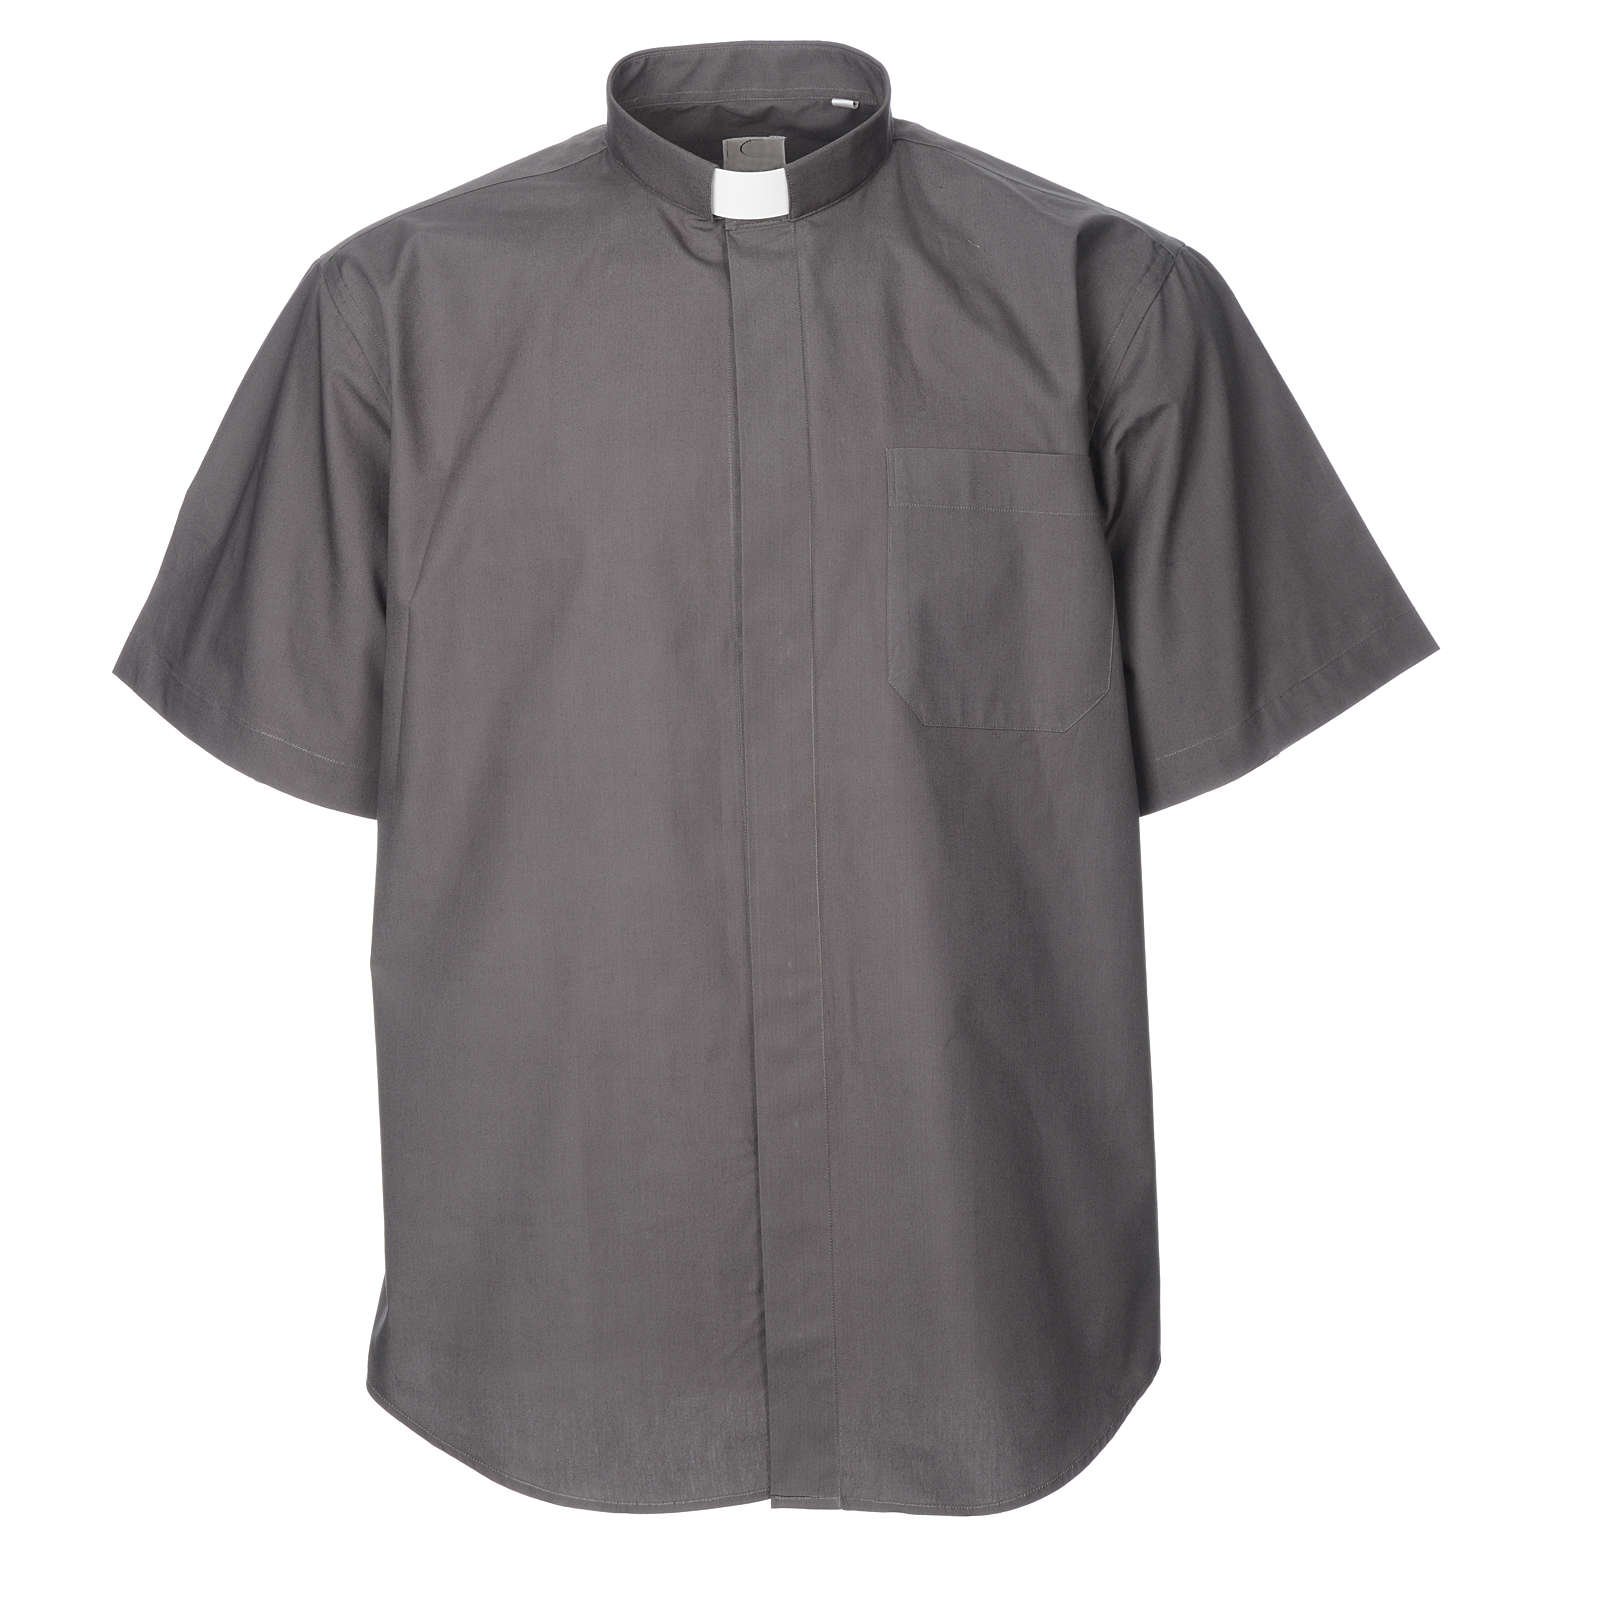 STOCK Clergyman shirt, short sleeves, dark grey poplin 4